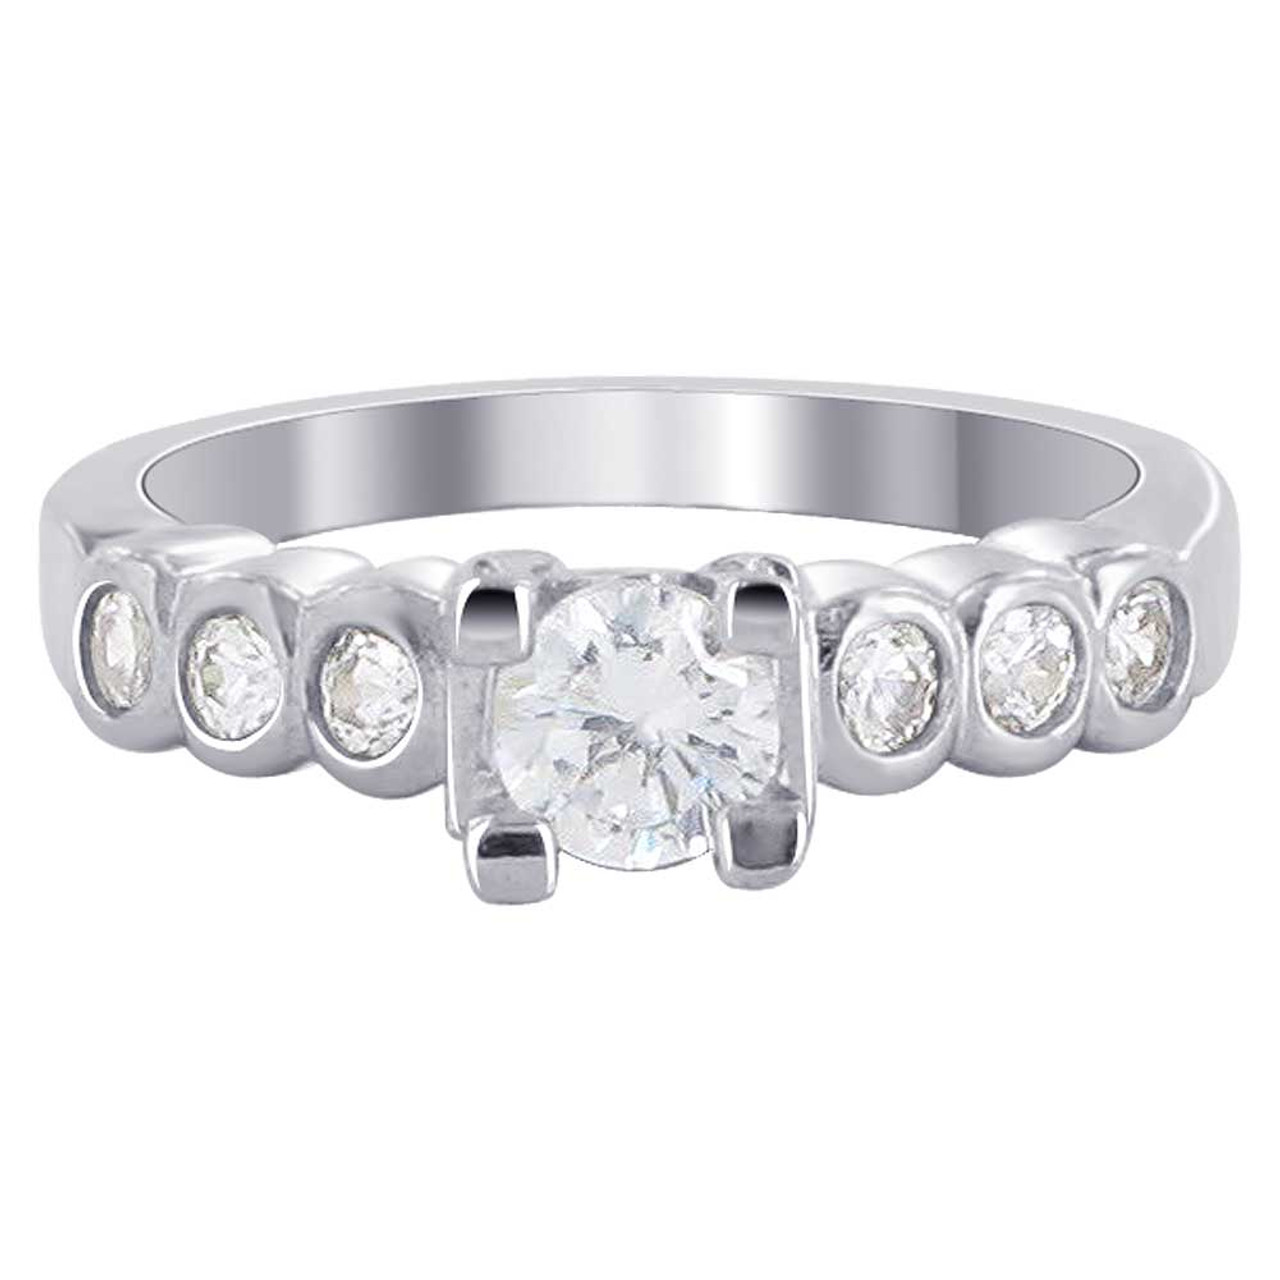 Sterling Silver CZ Engagement Ring Wedding Band Set Size 6.5